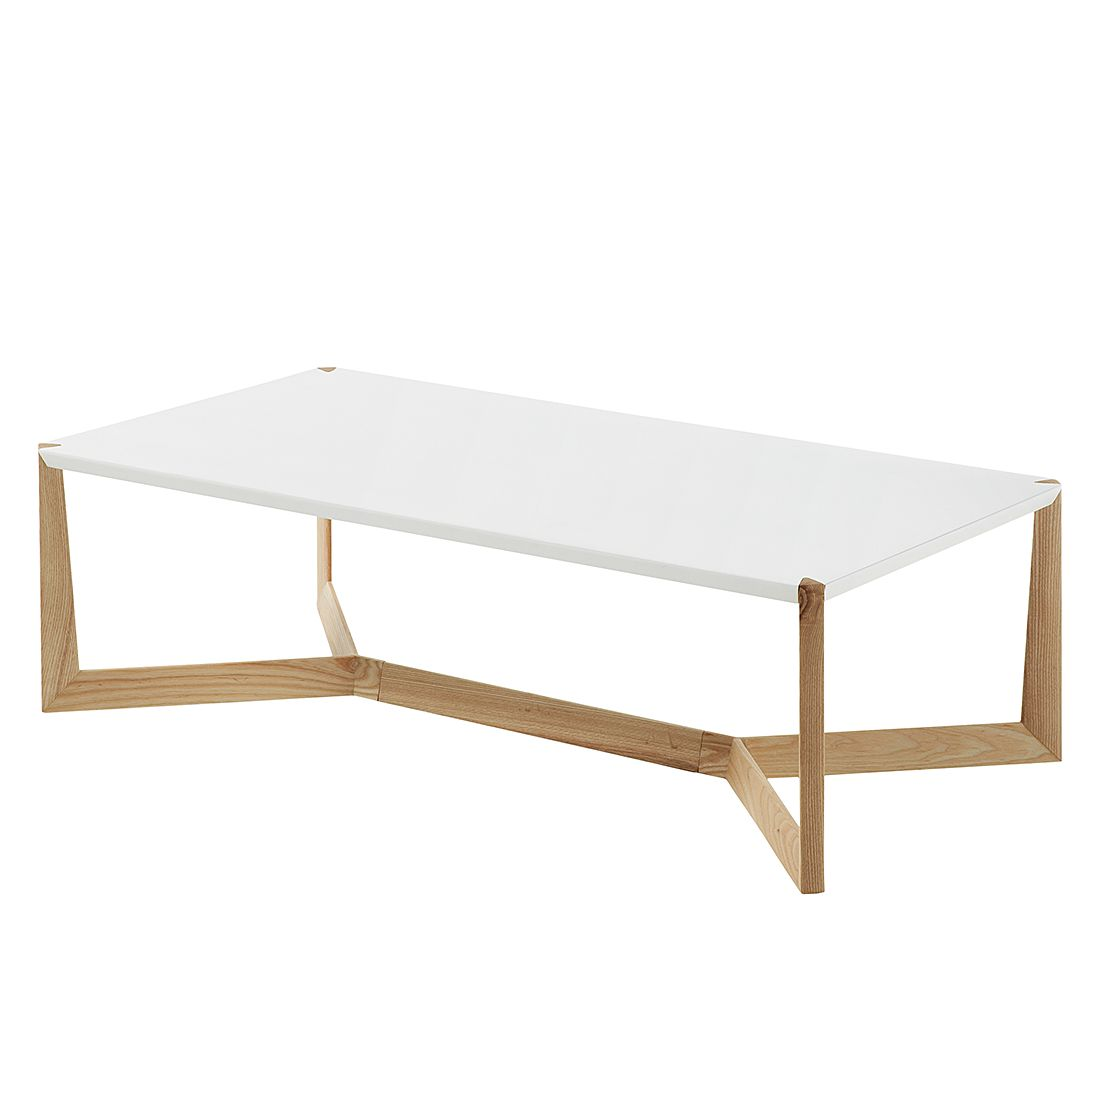 Table basse Donore - Blanc mat / Frêne, Morteens